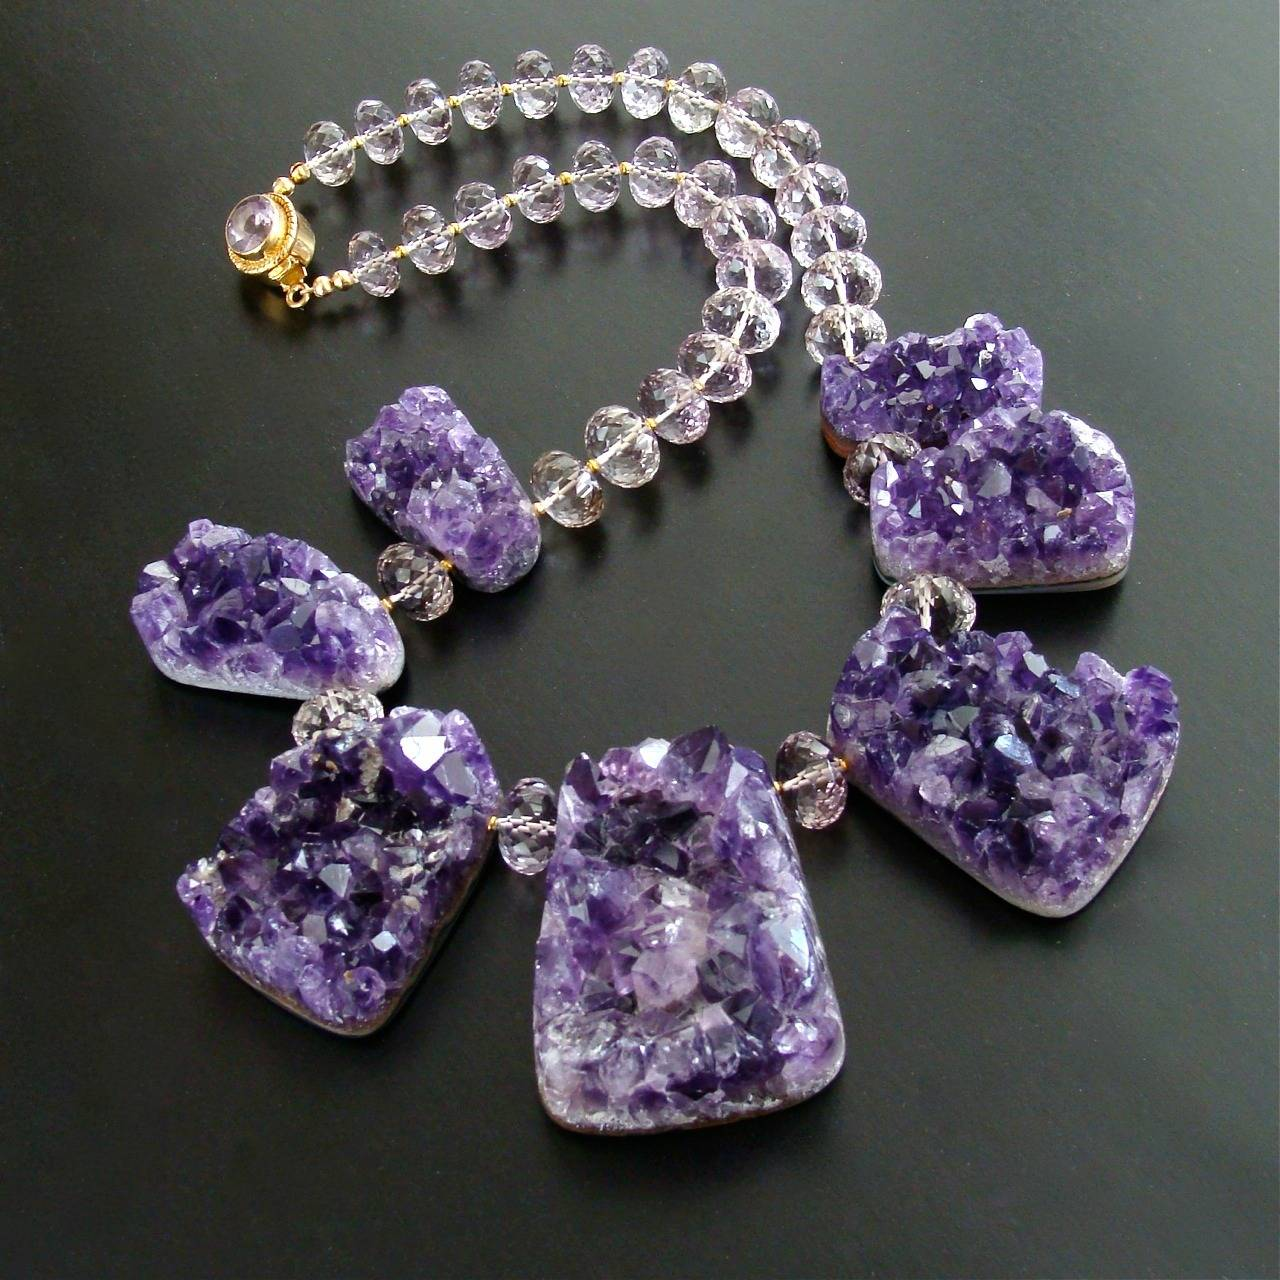 Seven specimen slabs of sparkling mystical amethyst crystal druzys have been combined with beautifully faceted graduated pink amethyst rondelles to create this jaw-dropping necklace.  The druzy slabs are absolutely mesmerizing and create an earthy